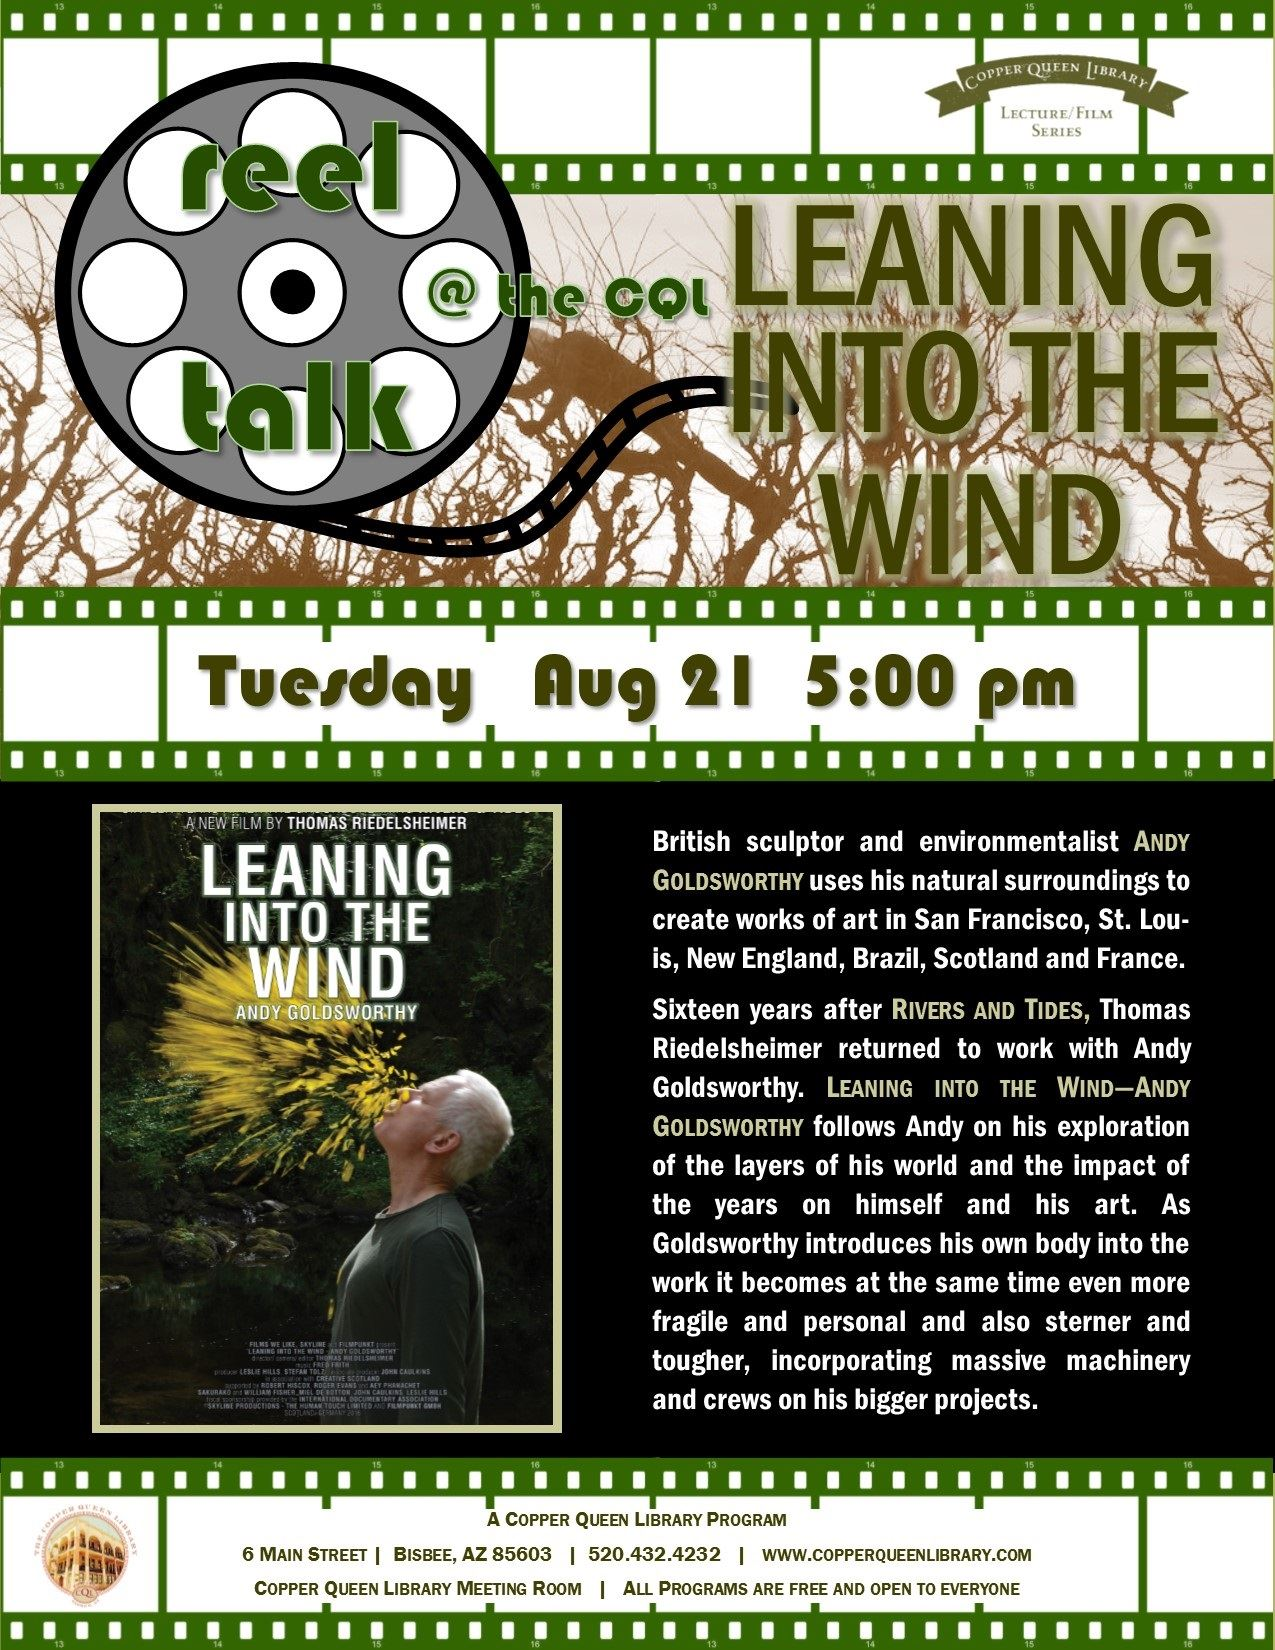 REEL TALK LEANING INTO THE WIND 8.21.18  8.5 X 11